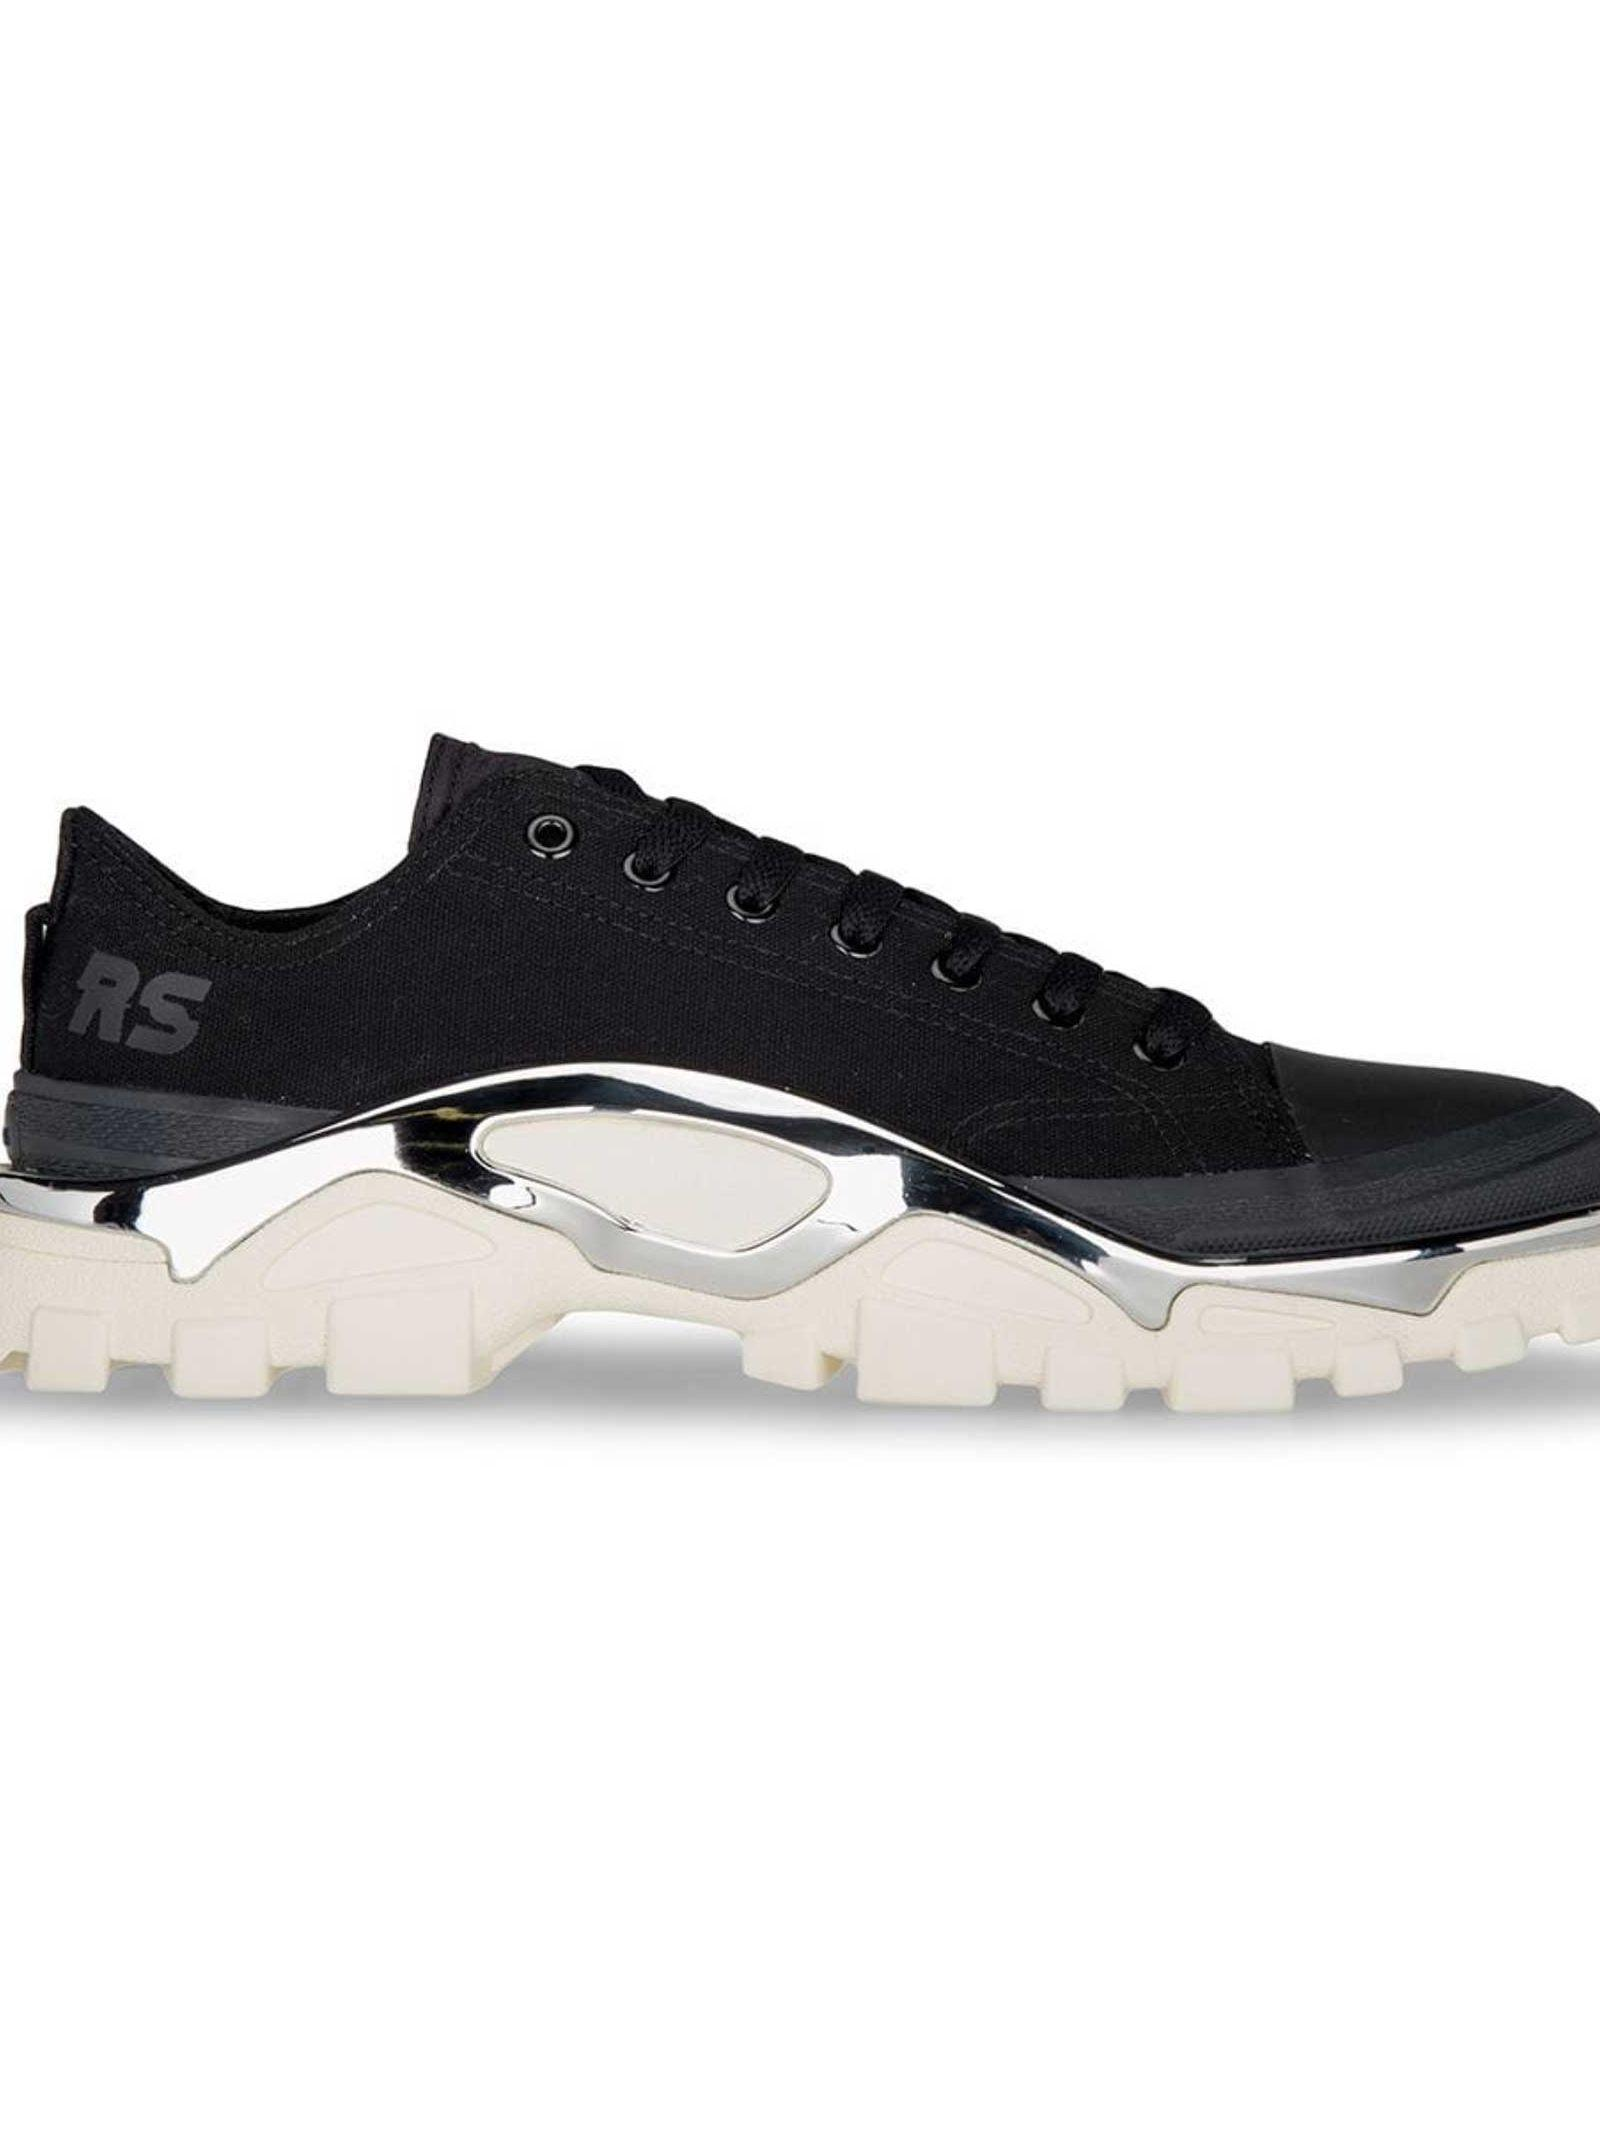 sports shoes f3777 c4159 Adidas By Raf Simons Adidas Raf Simons Detroit Runner Sneakers In Black